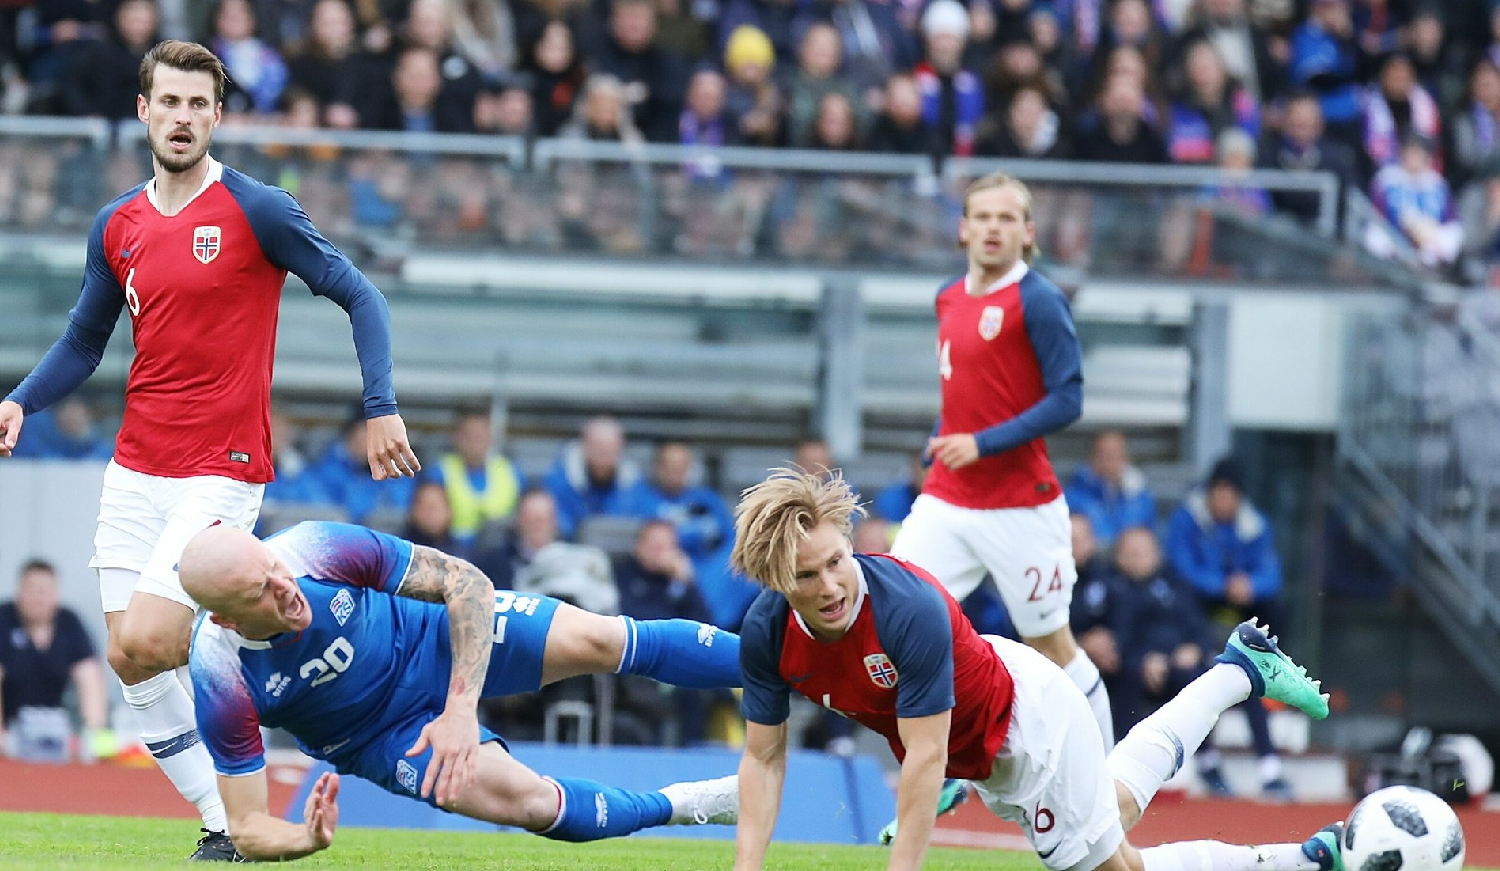 Int'l Friendlies: Eagles' World Cup Foes Iceland Lose At Home To Norway, Austria Shock Germany